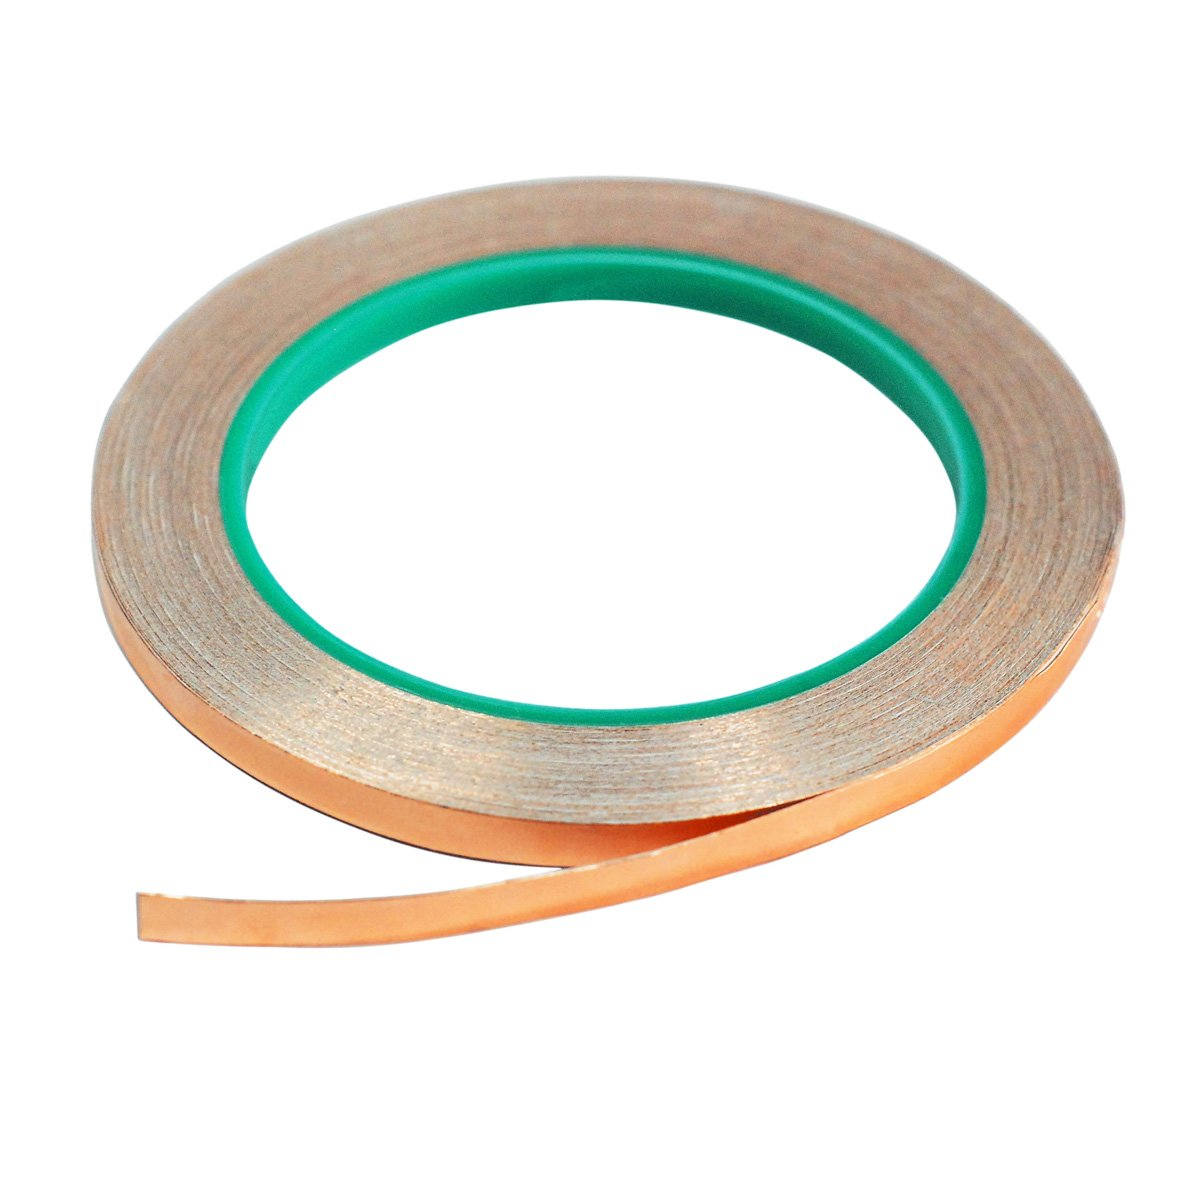 Copper Foil Tape,4Pcs DIKOO Double-Sided Conductive Adhesive (1/4inch X 21.8yards) for EMI Shielding,Slug Repellent,Electrical Repairs,Stained Glass,Art Work,Soldering,Grounding Paper Circuits,Crafts by DIKOO (Image #2)